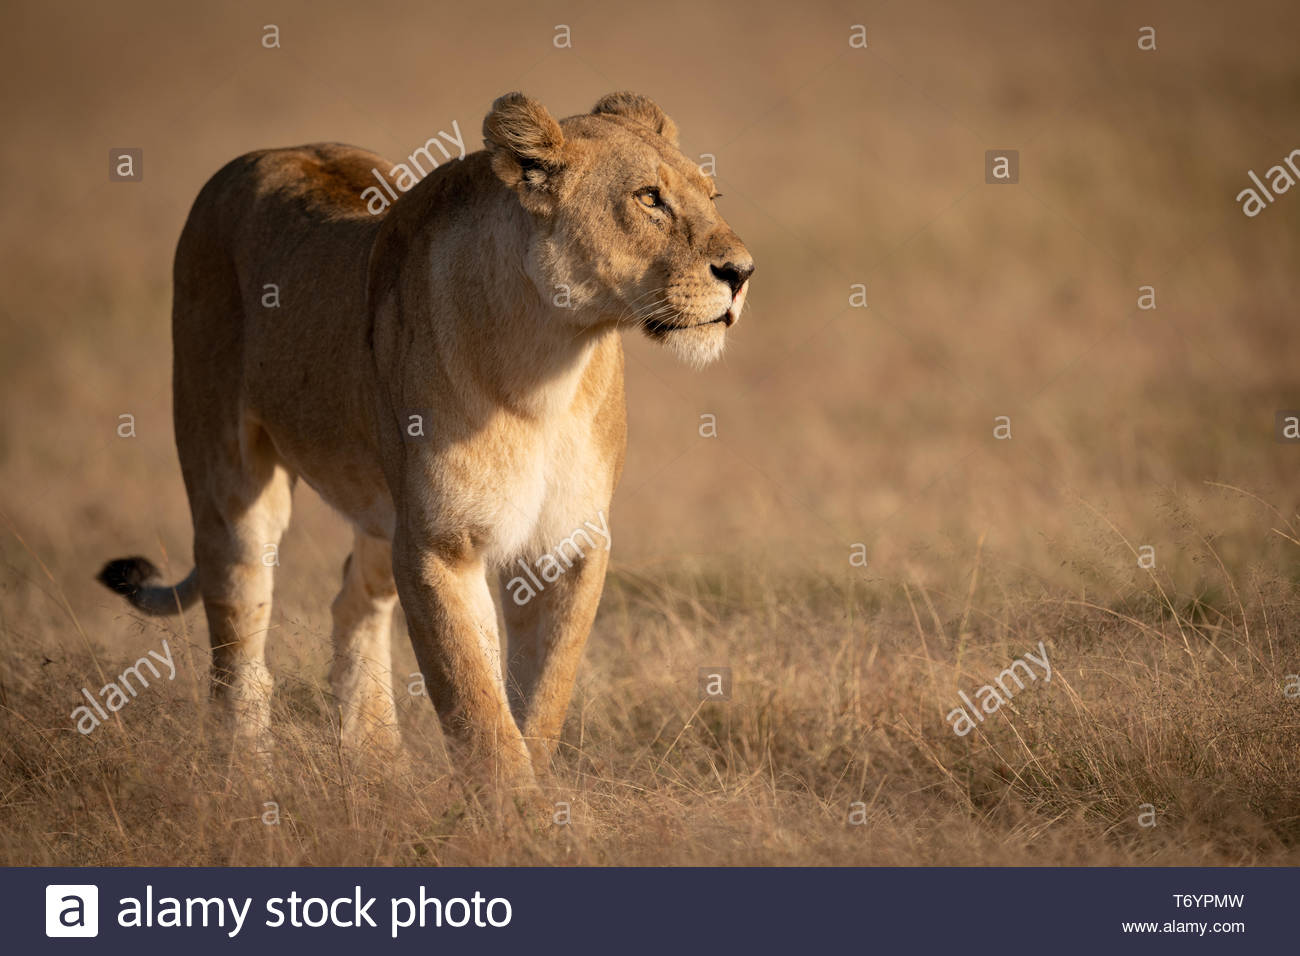 Lioness crosses grass with catchlight in eye - Stock Image